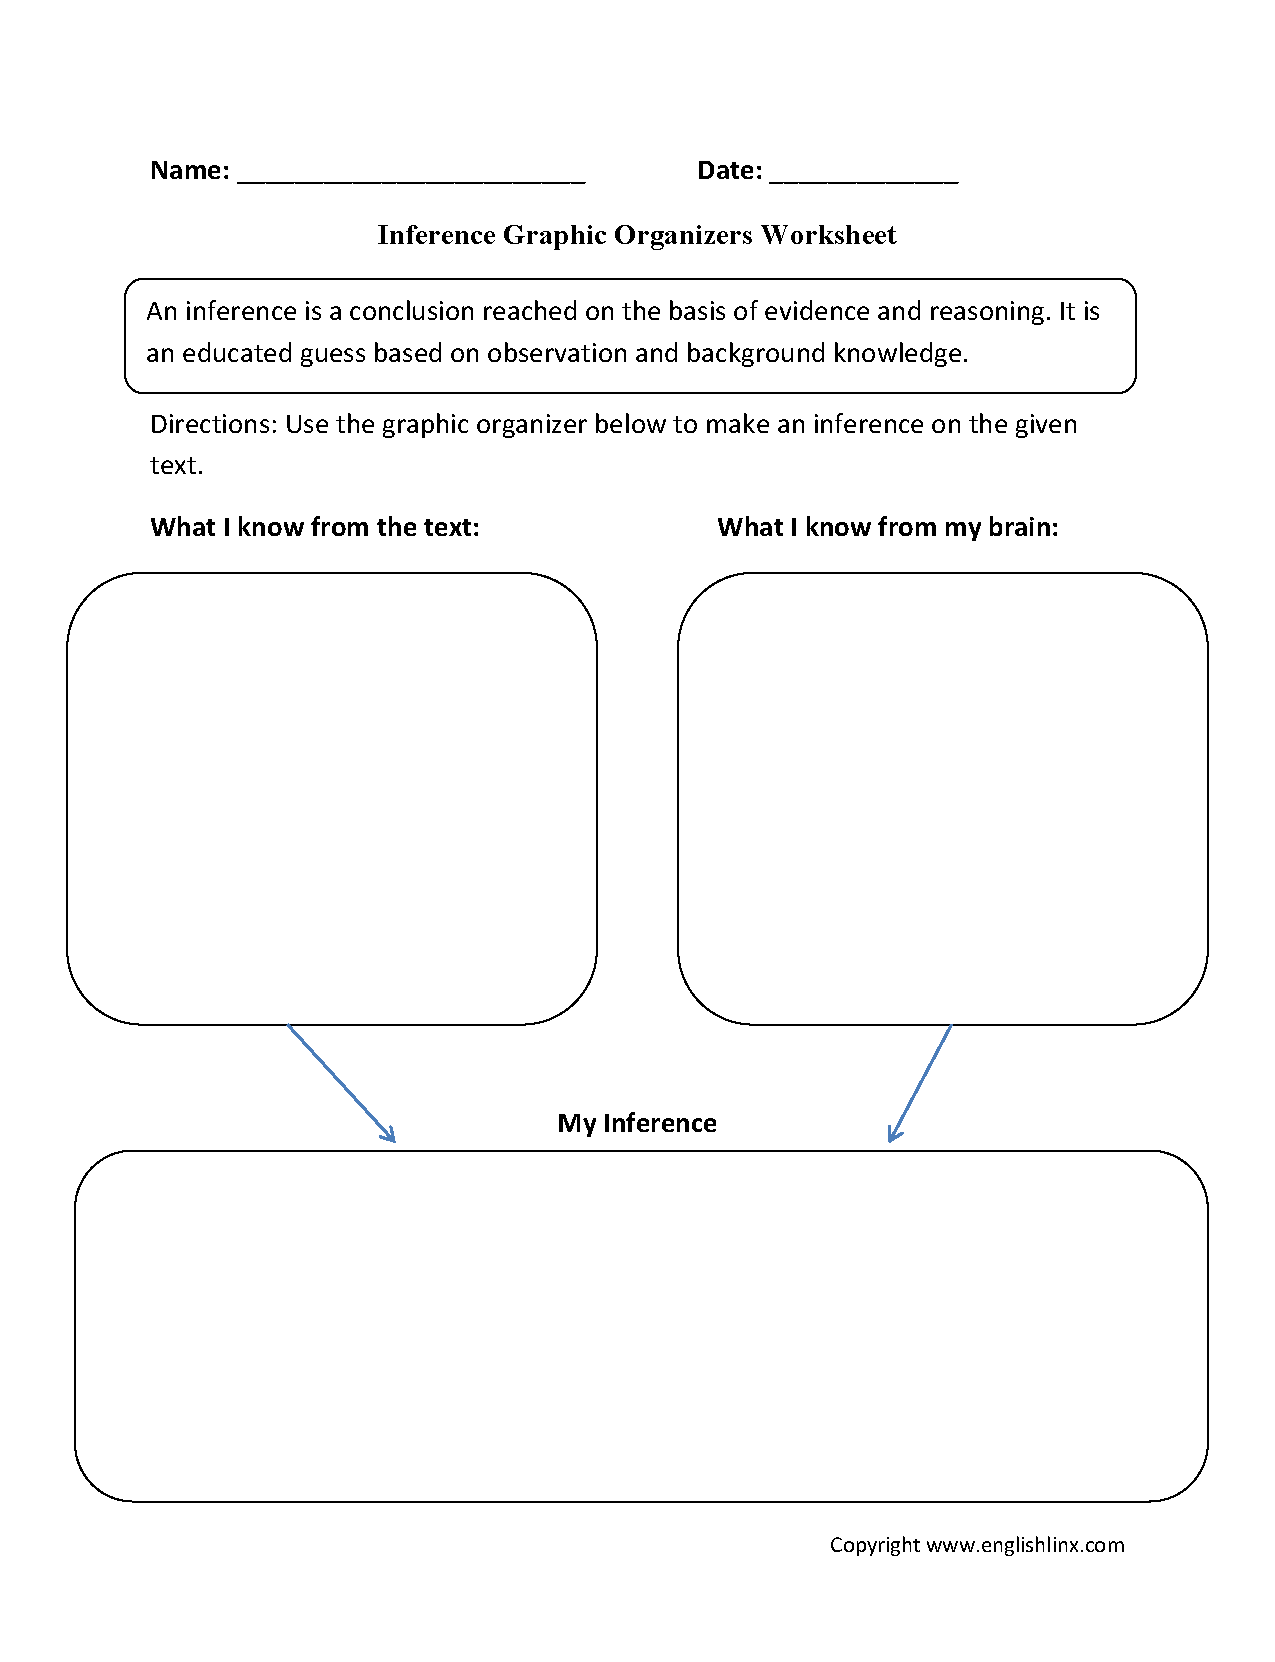 Free Worksheet Inference Worksheets 4th Grade inference worksheets 4th grade rringband graphic organizers organizers